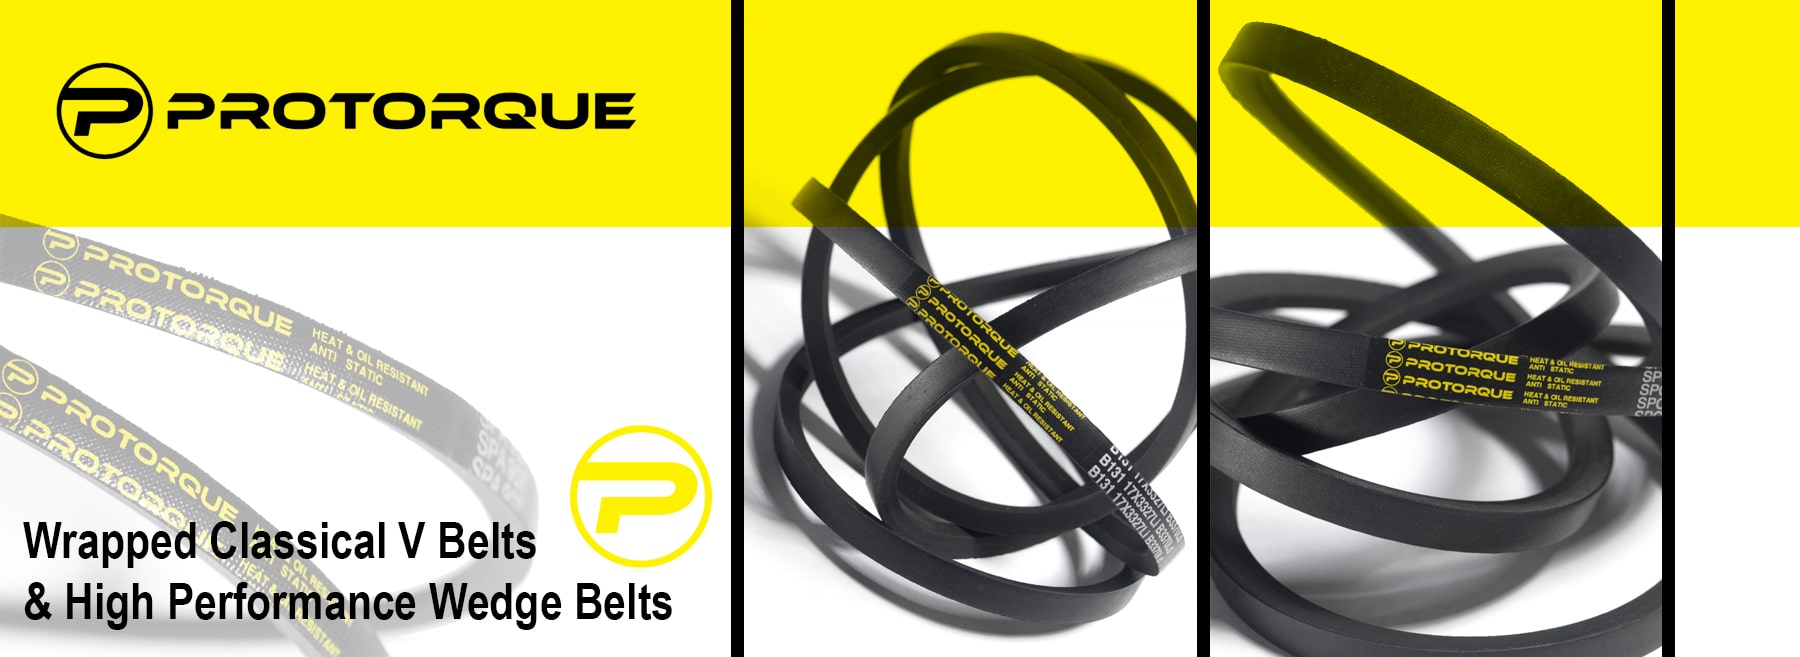 Protorque - Wrapped Classical V Belts and High Performance Wedge Belts